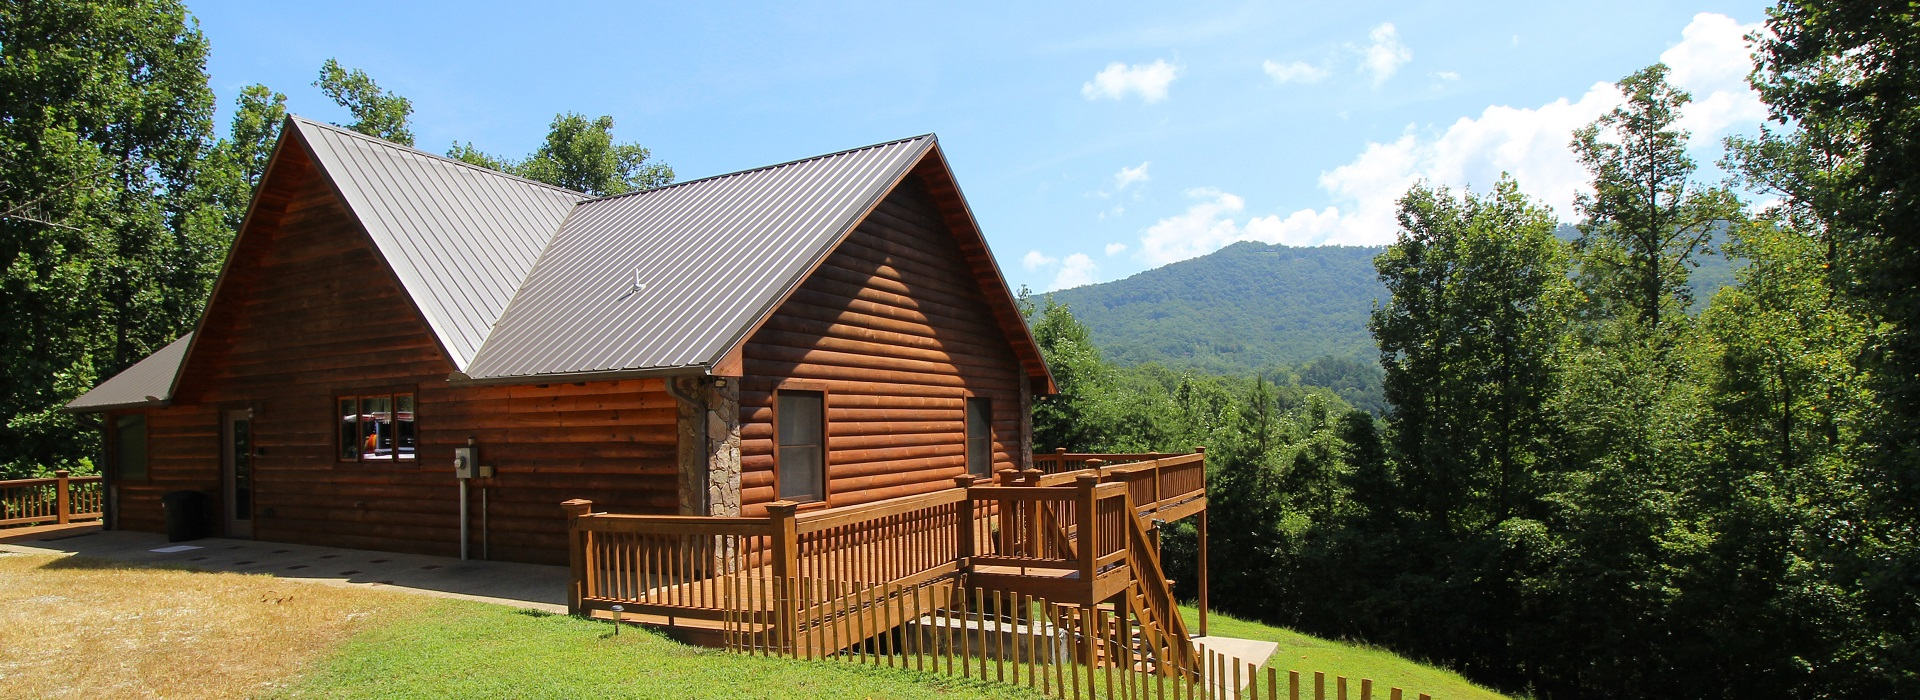 old great airbnb gatlinburg cherokee cabin mounts smoky log romntic tn lookg cabins wher nc rentals mountain getwy mountains